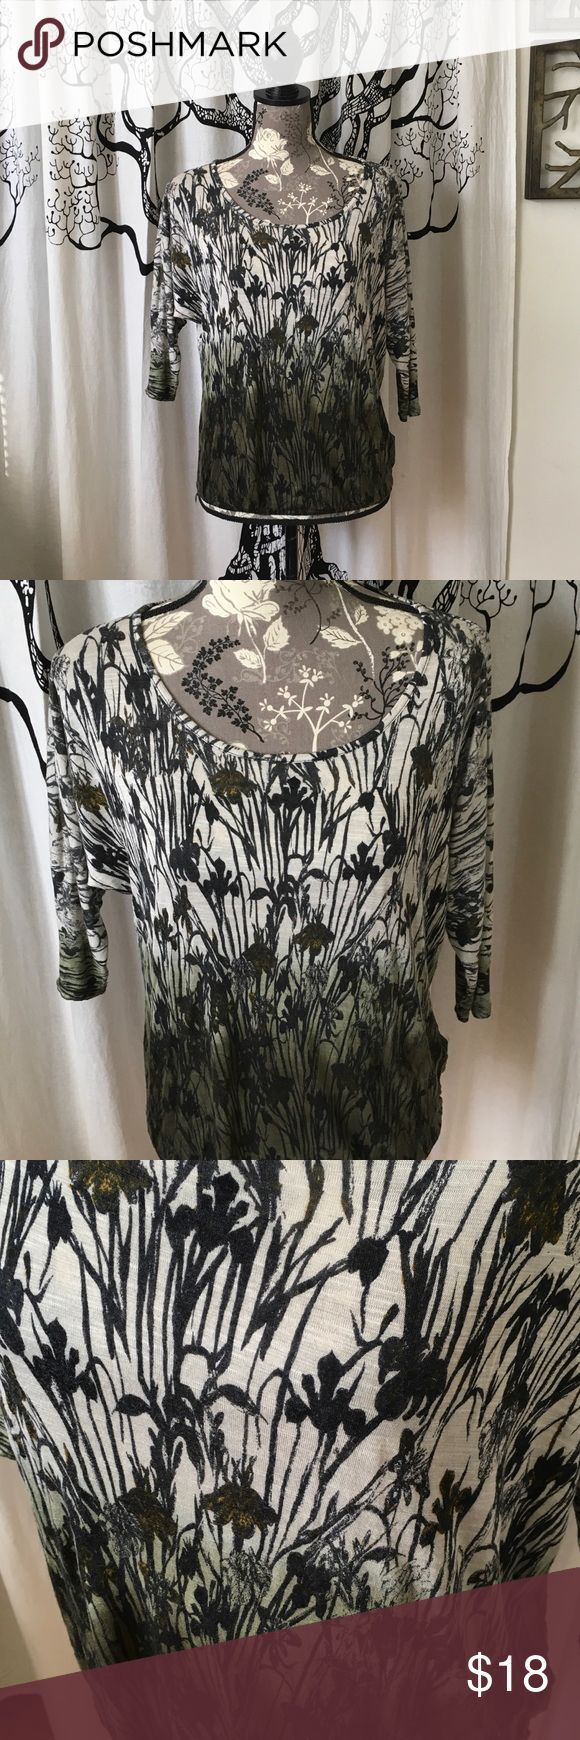 """Anthropologie Ella Moss Soft Floral Top SZ S Gorgeous, amazingly soft batwing top by Ella Moss for Anthropologie in beautiful greens, black and dark yellow on cream. Elastic band at the hem. Perfect, like new condition. Note there is a small area on the arm where the green dye is slightly out of place. This is not a stain; it was purchased this way and totally blends in with the design. Lightweight, super soft rayon. SZ S. Accommodates most bust sizes, 25"""" L. Beautiful for spring…"""